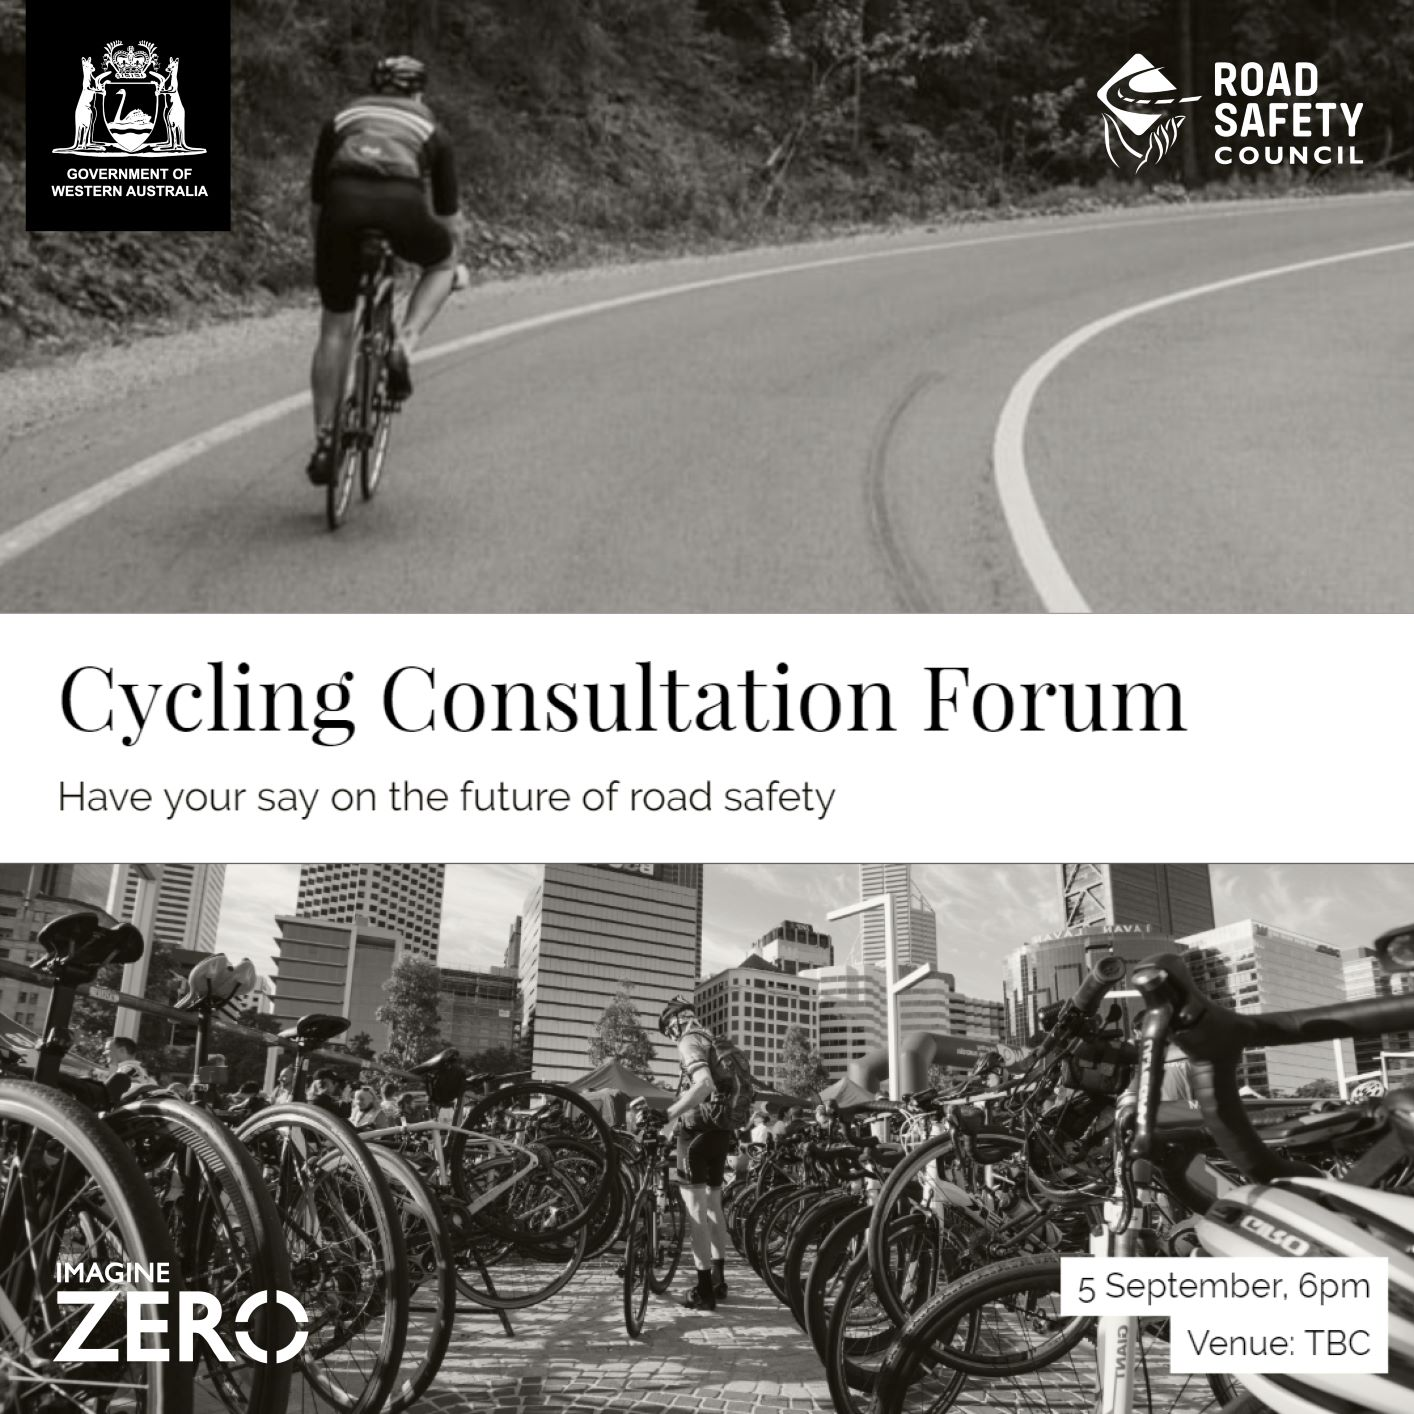 Img: Cycling Consultation Forum